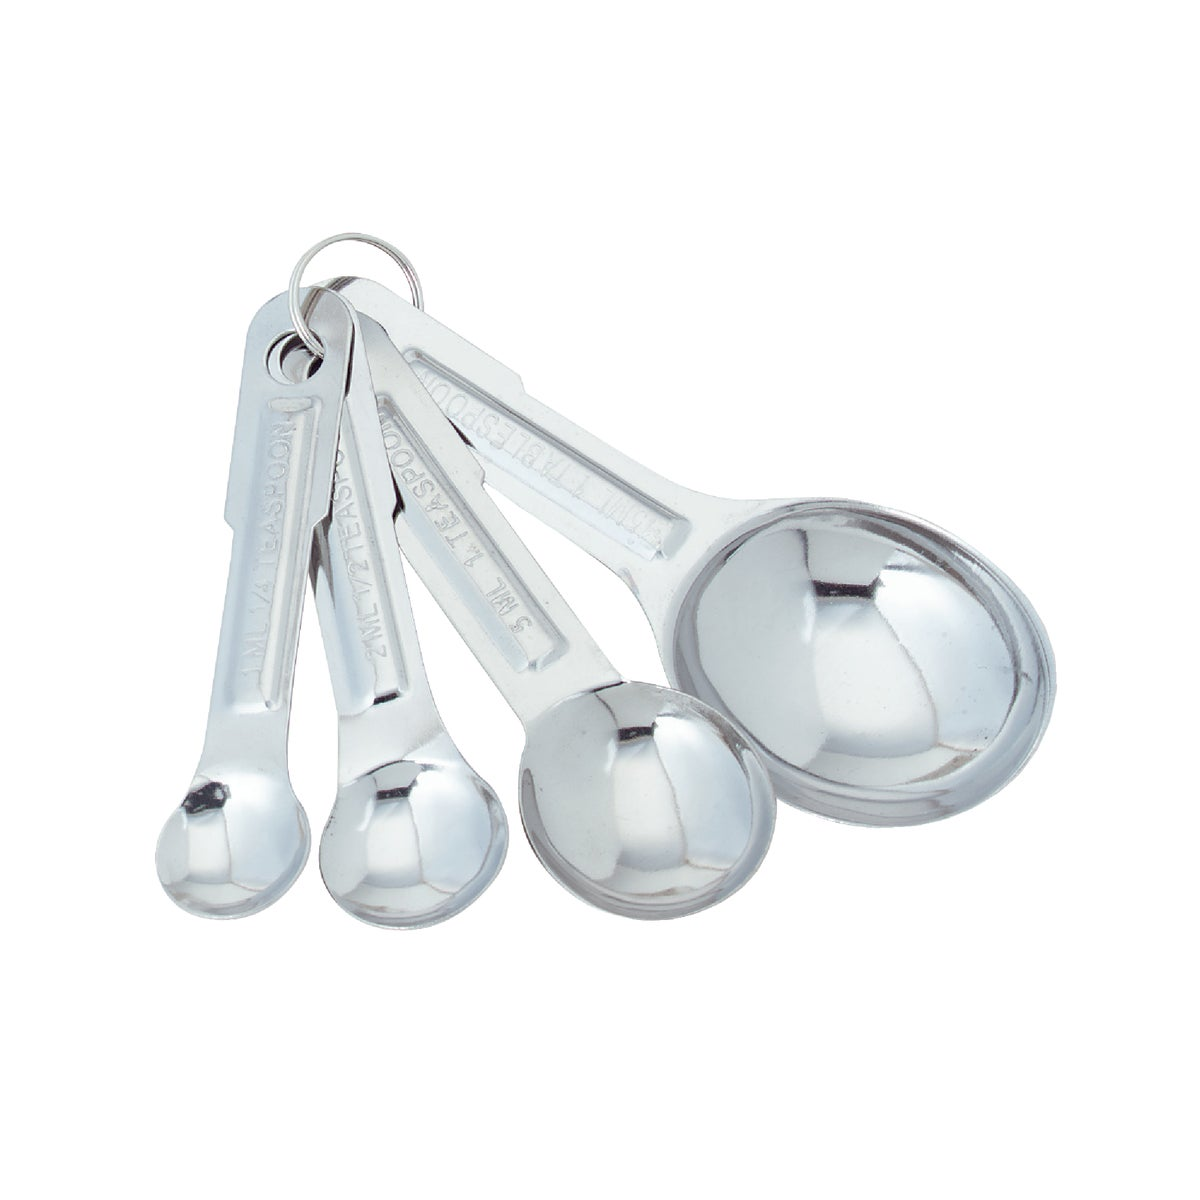 4PC SS MEASURING SPOONS